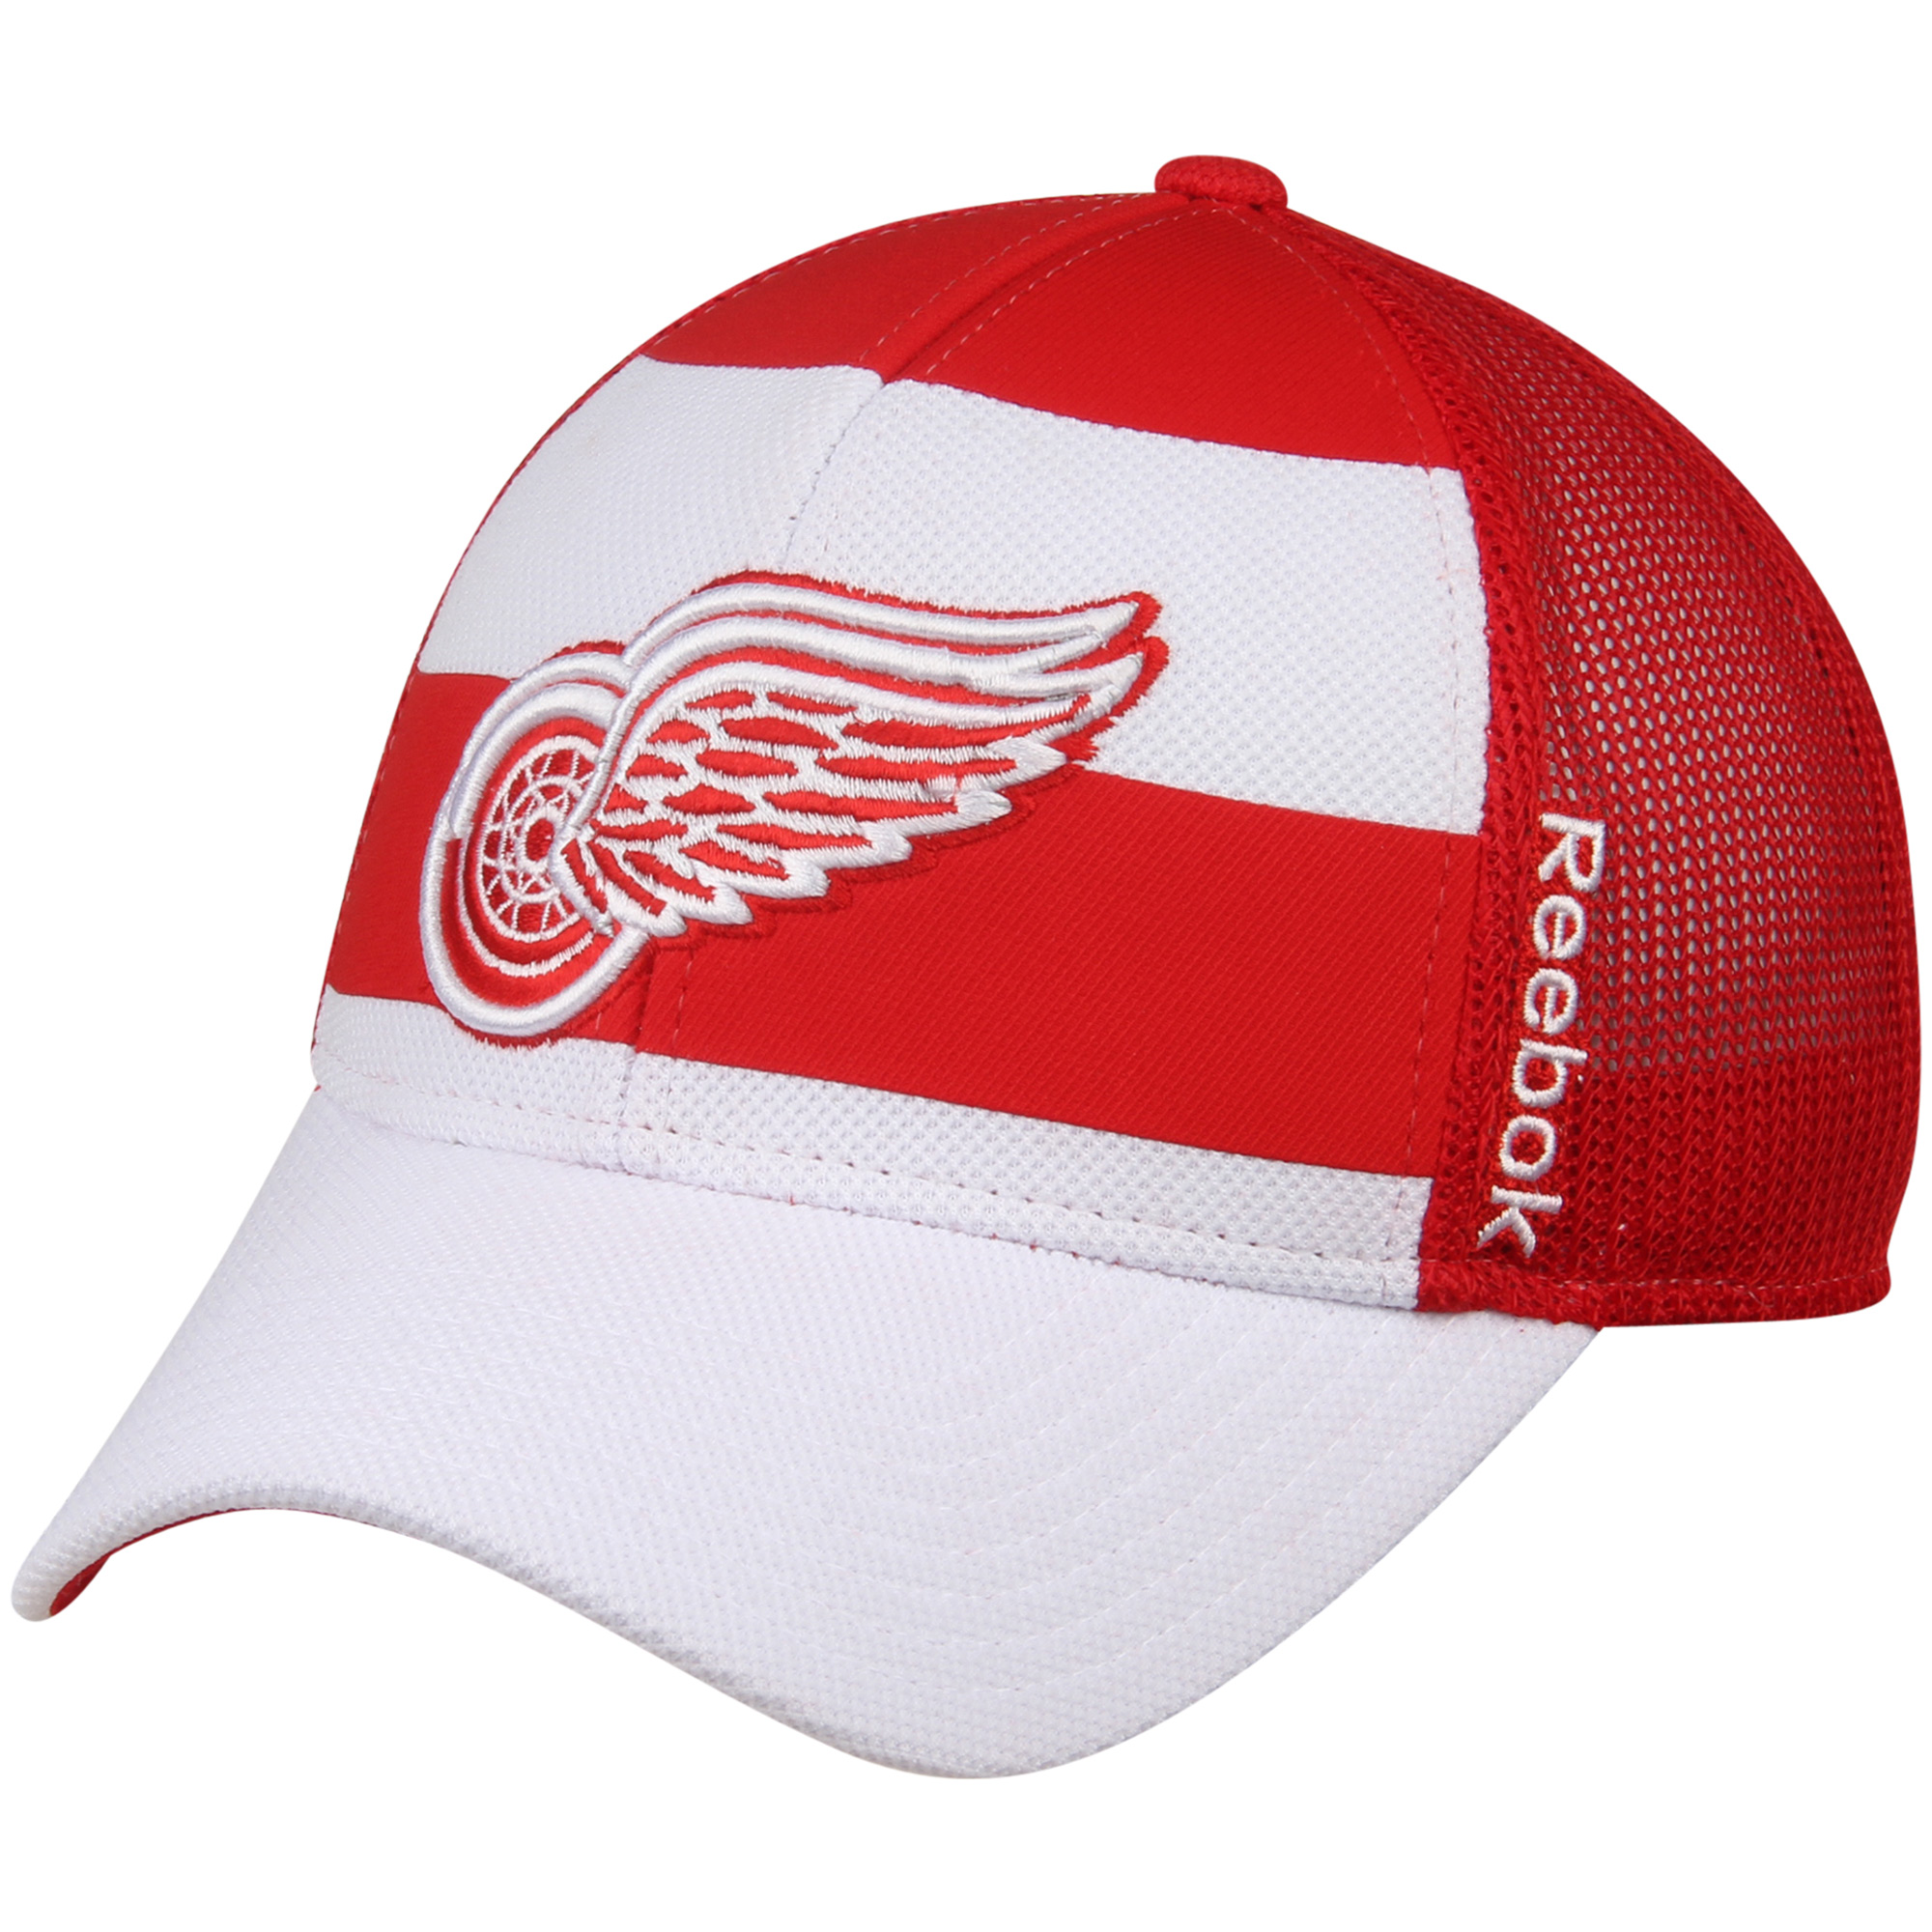 Detroit Red Wings Reebok Face Off Trucker Hat - White/Red - OSFA